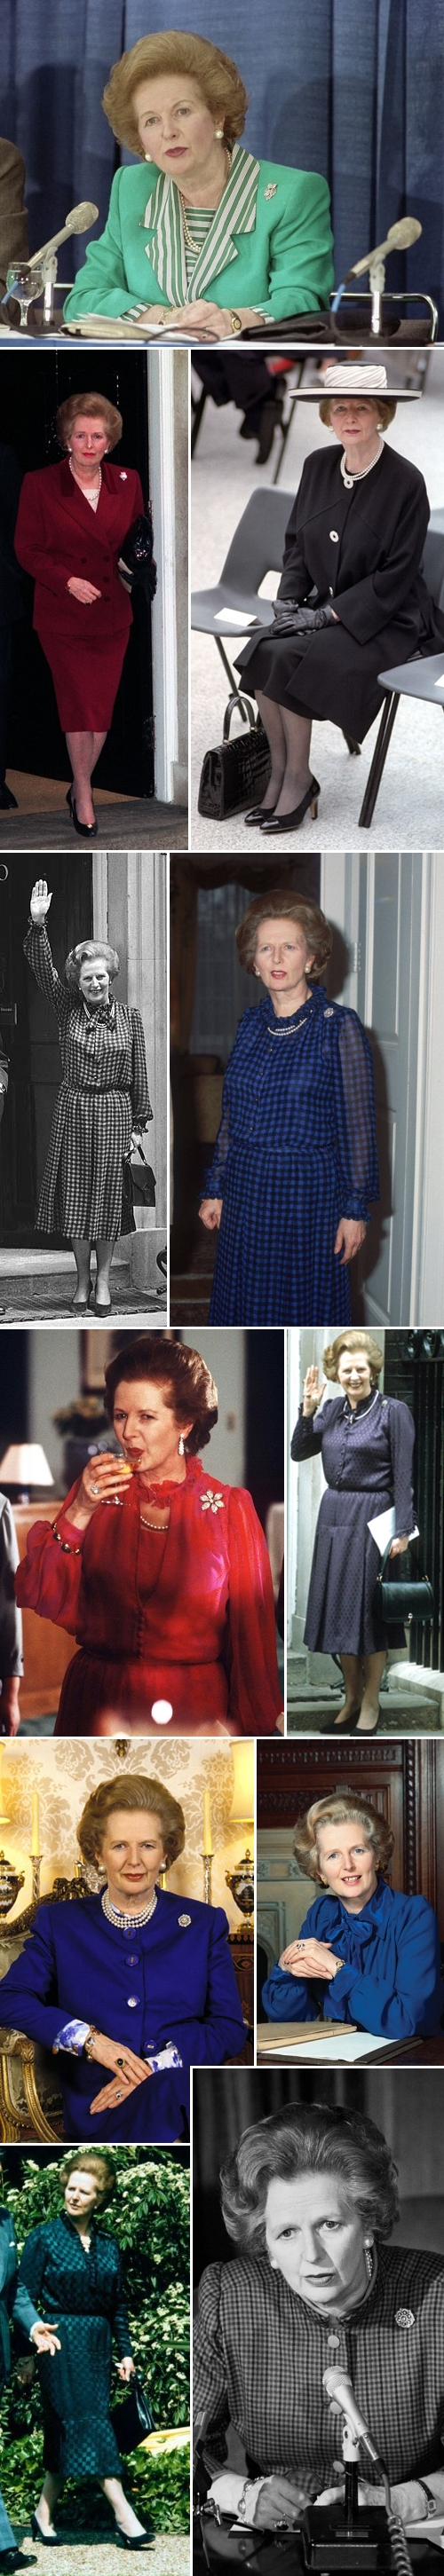 Margaret Thatcher2